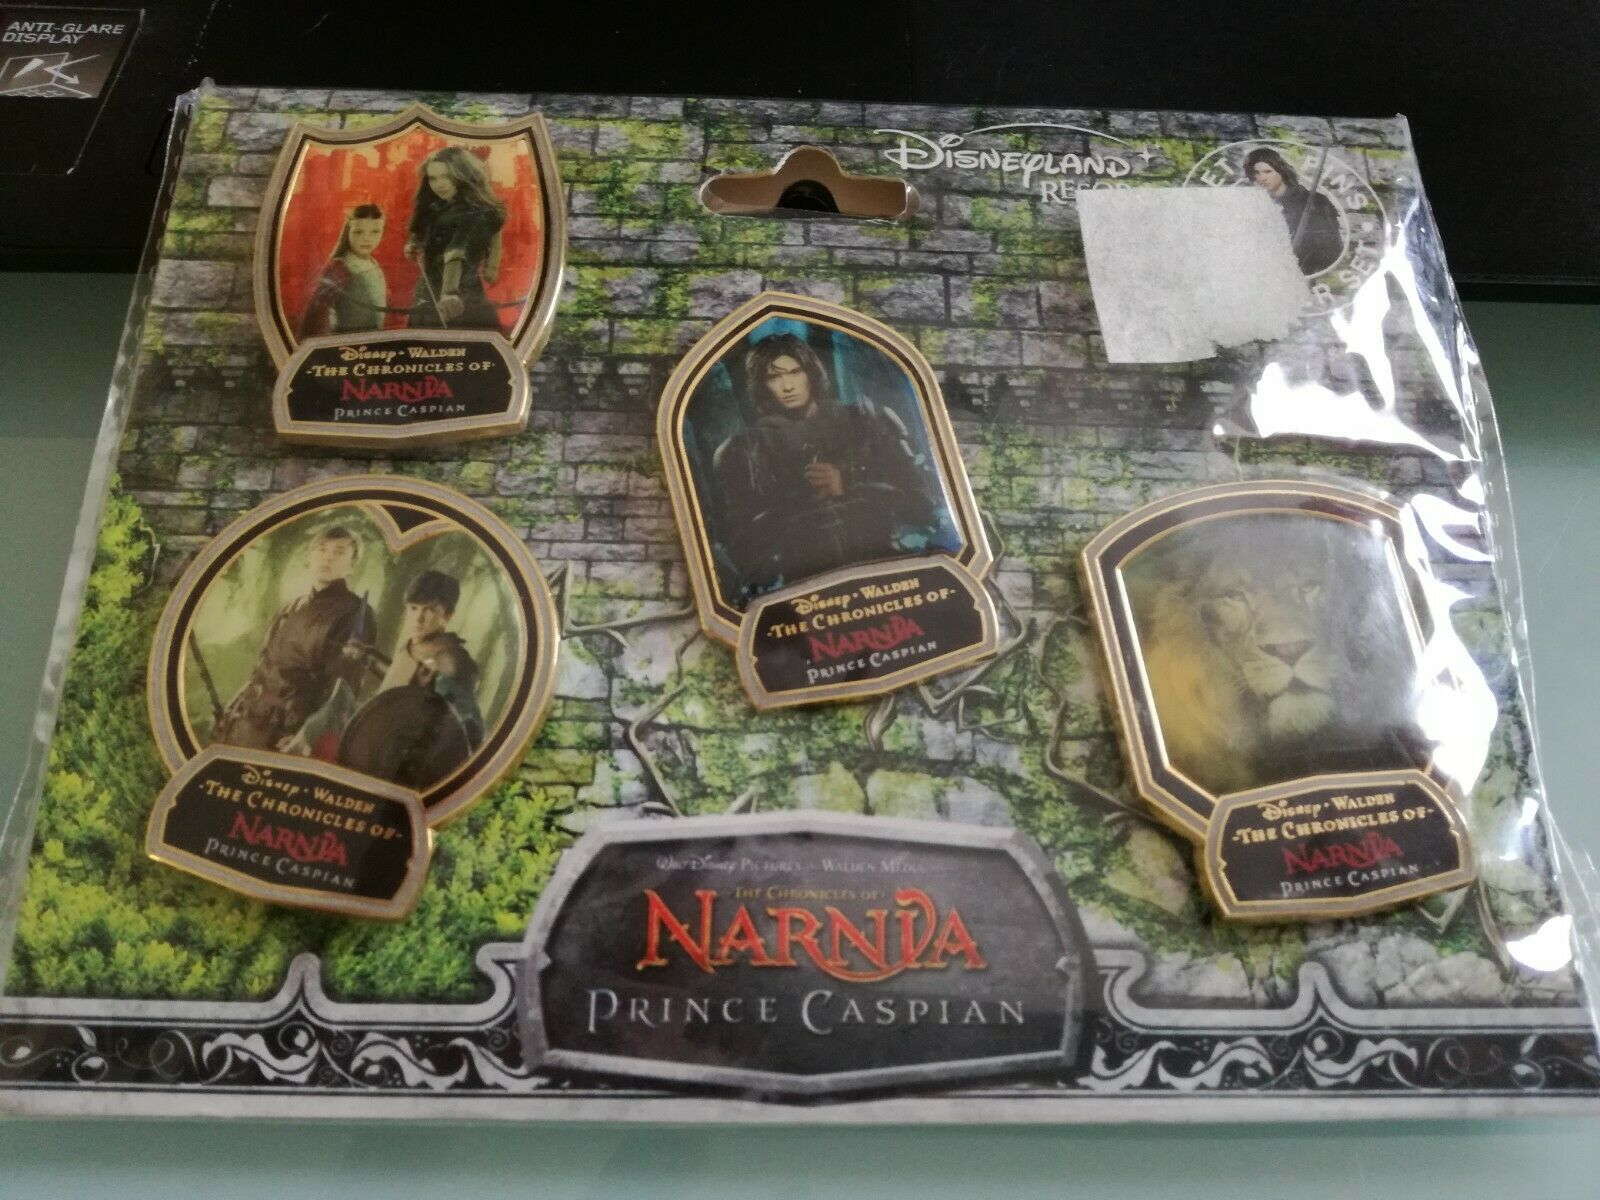 4-Pack NEW SEALED PINS THE CHRONICLES OF NARNIA PRINCE CASPIAN, Neuf DISNEYLAND